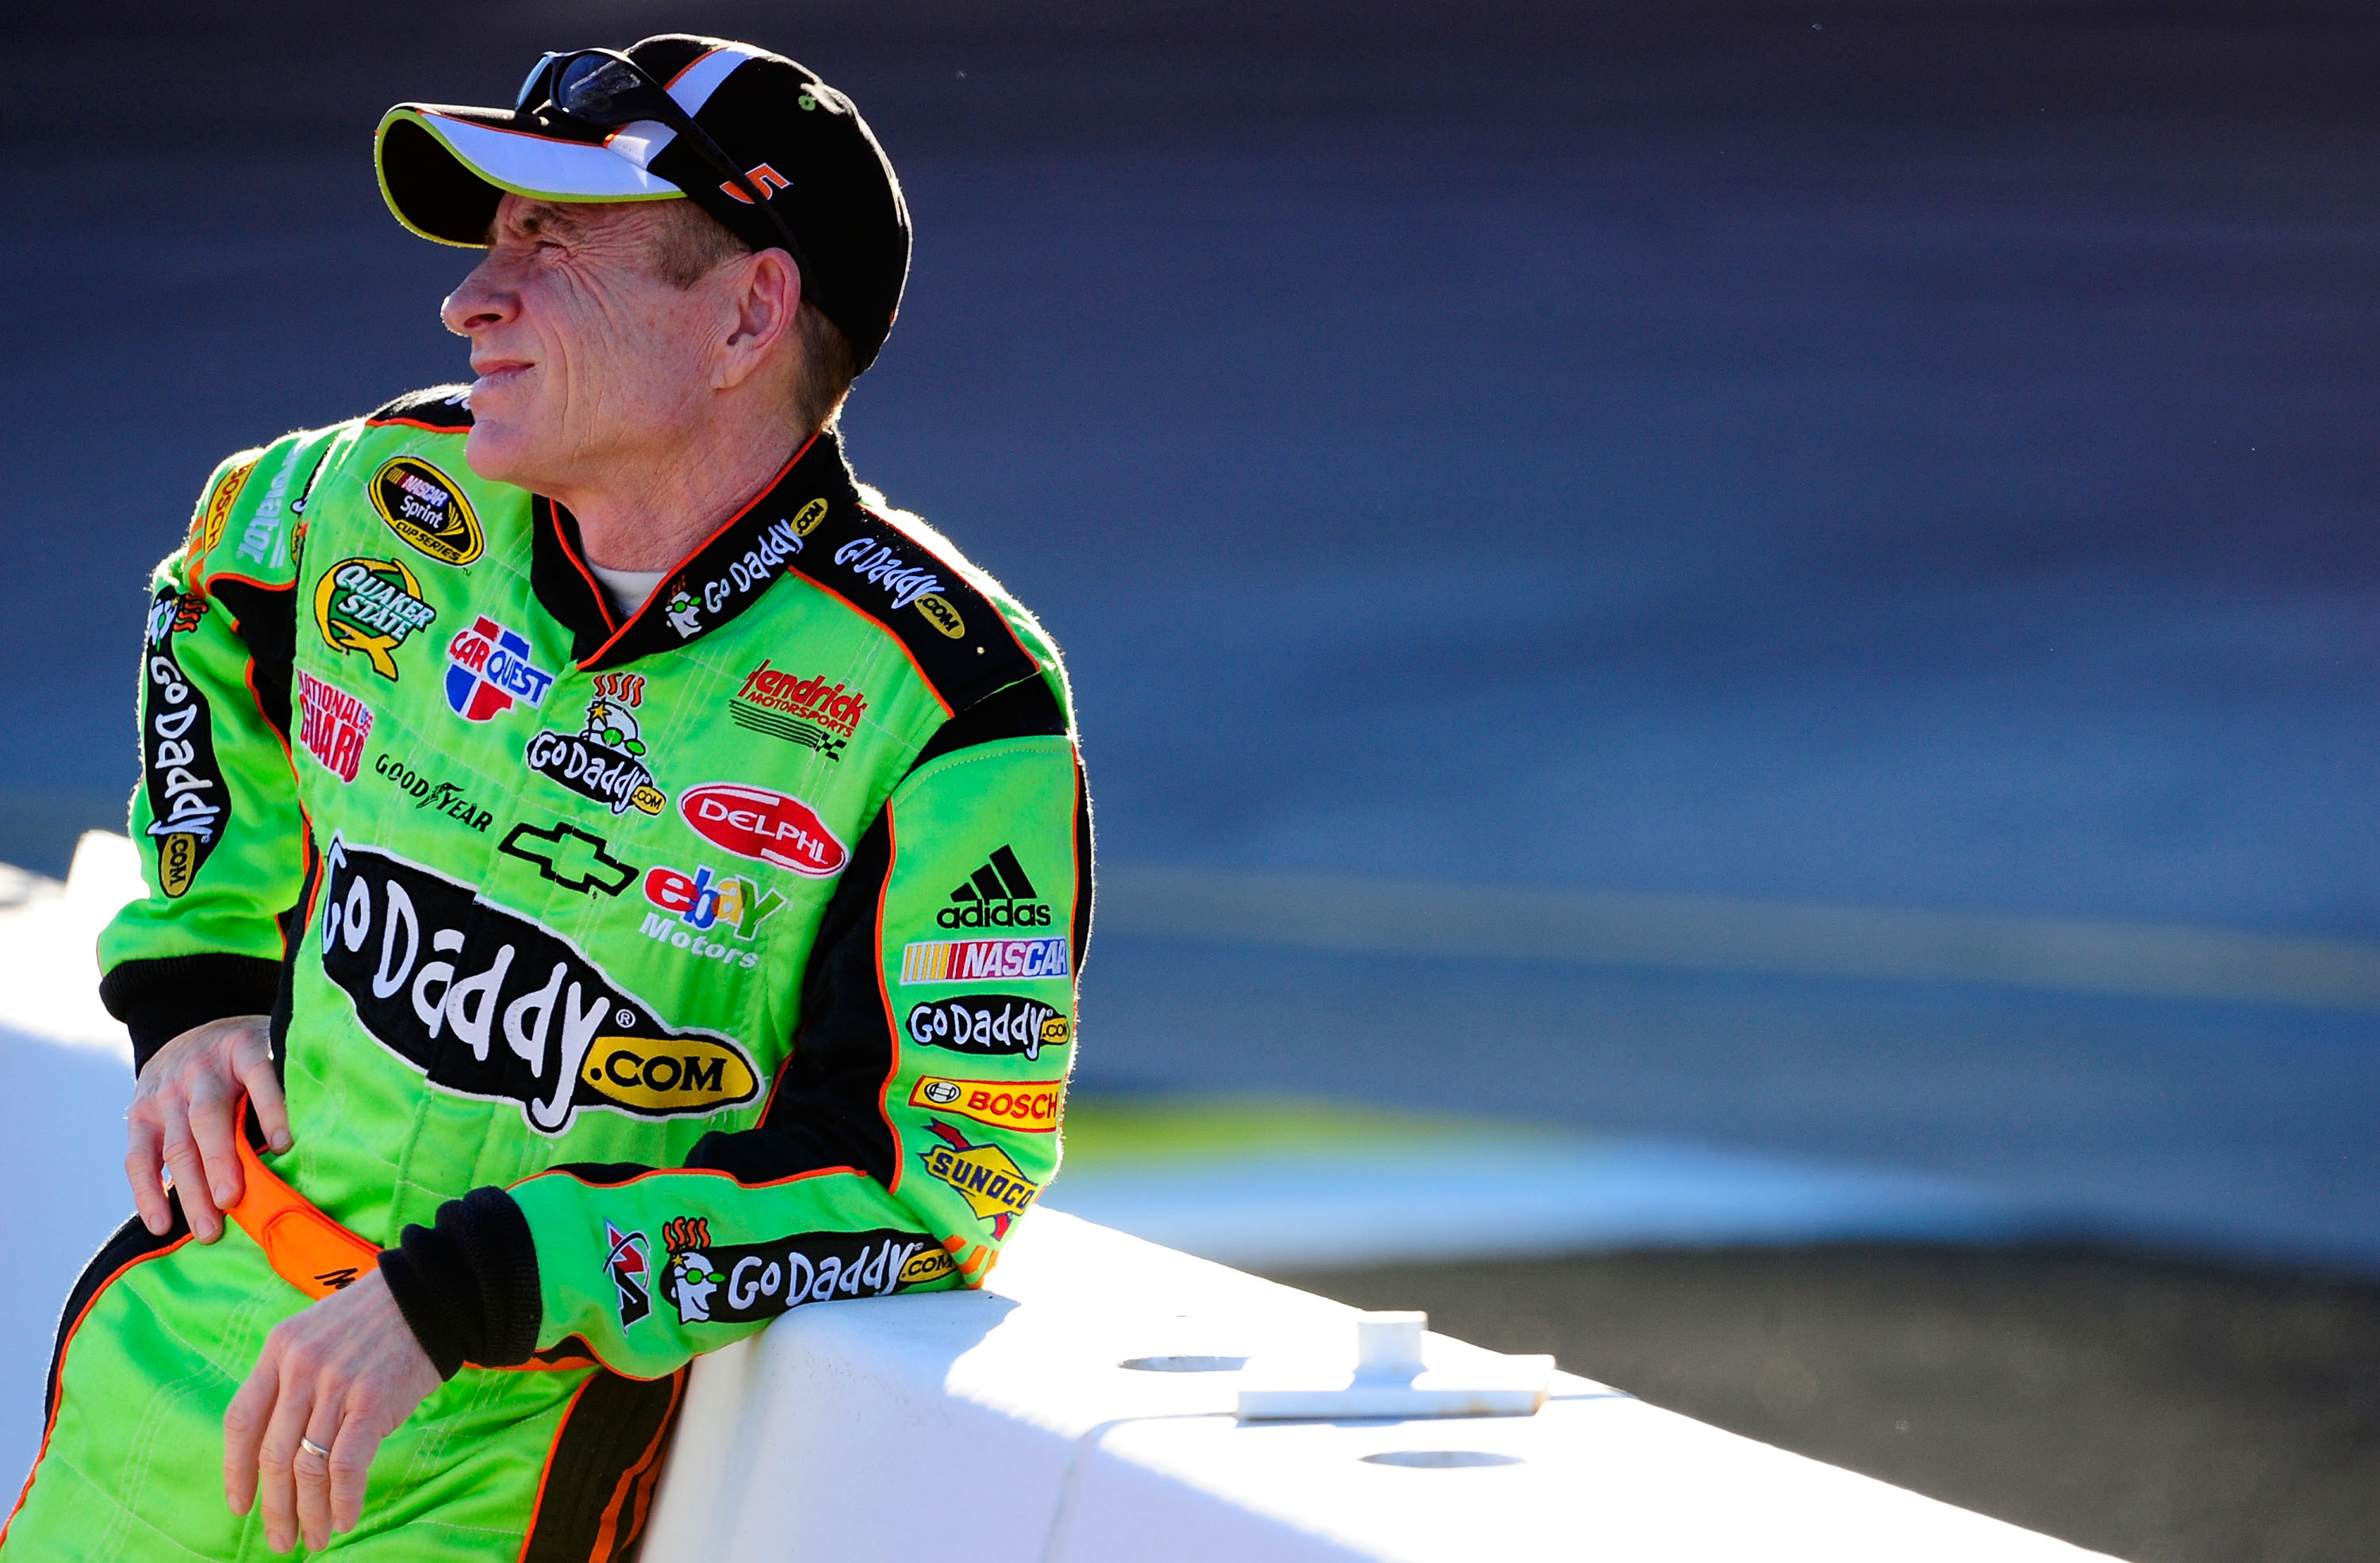 AVONDALE, AZ - NOVEMBER 12:  Mark Martin, driver of the #5 GoDaddy.com Chevrolet, stands on pit road during qualifying for the NASCAR Sprint Cup Series Kobalt Tools 500 at Phoenix International Raceway on November 12, 2010 in Avondale, Arizona.  (Photo by